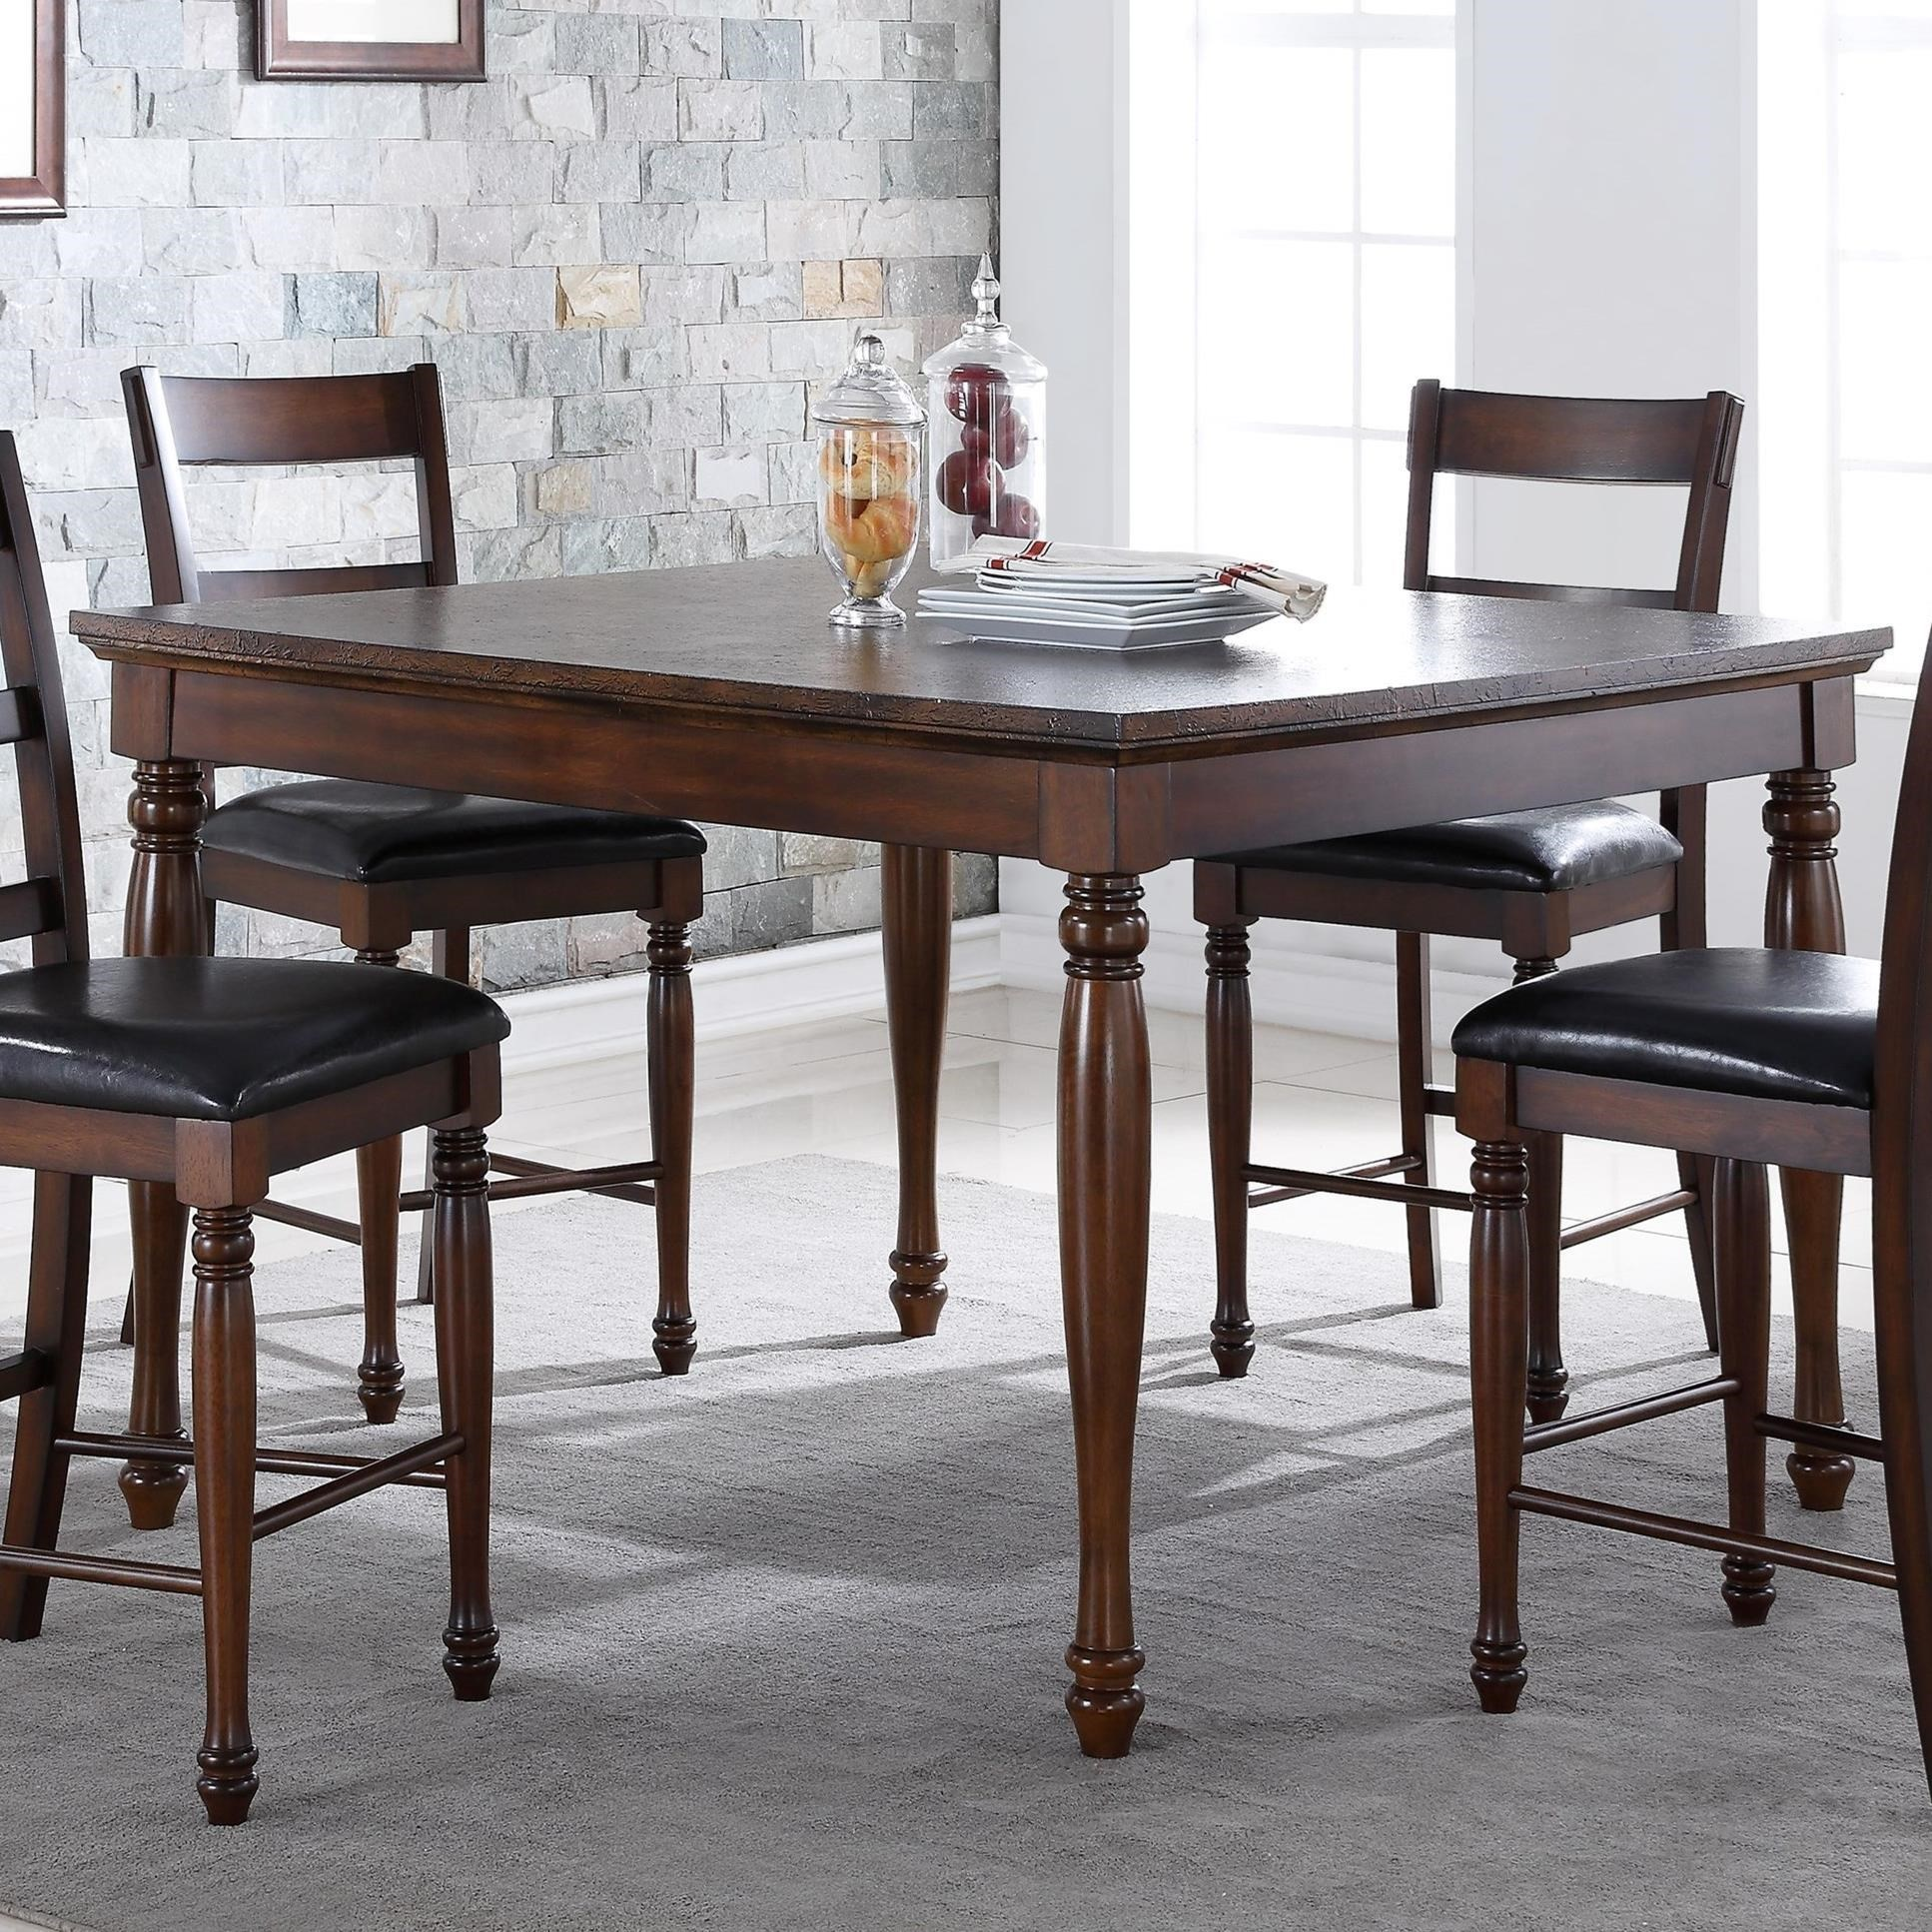 Beau Legends Furniture BreckenridgeBreckenridge 54 ...